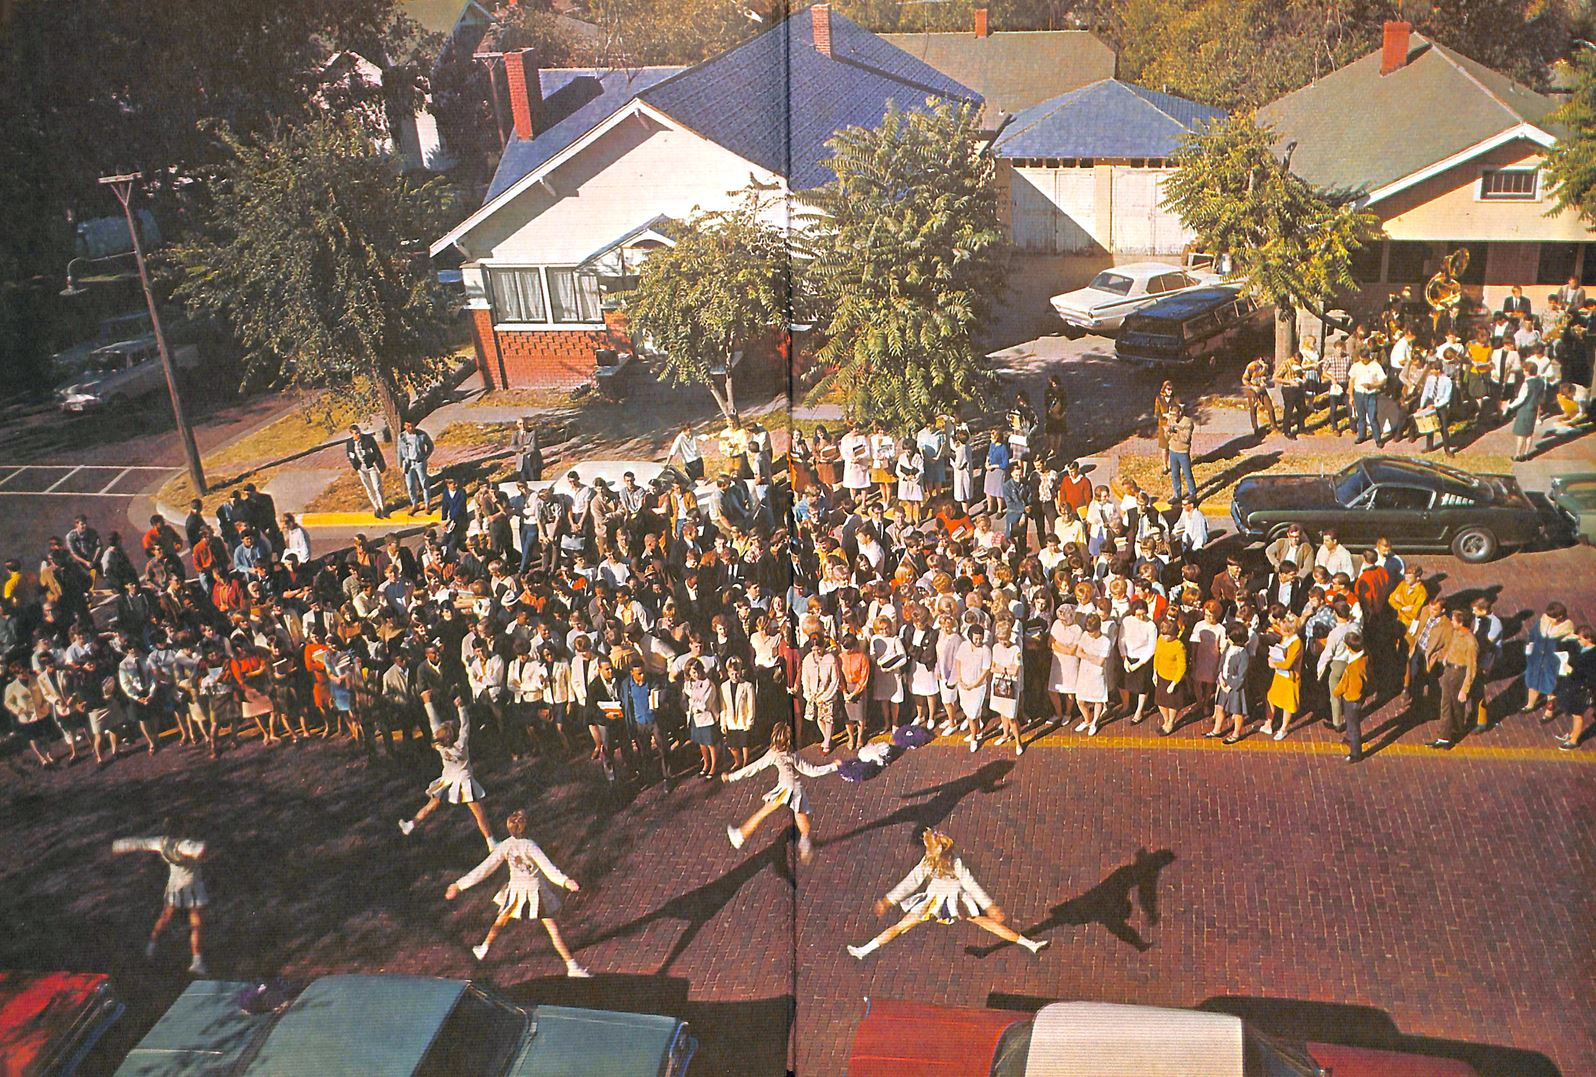 A yearbook photo of a pep rally on a Dodge City street. Cheerleaders jump in the foreground while a large crowd looks on.